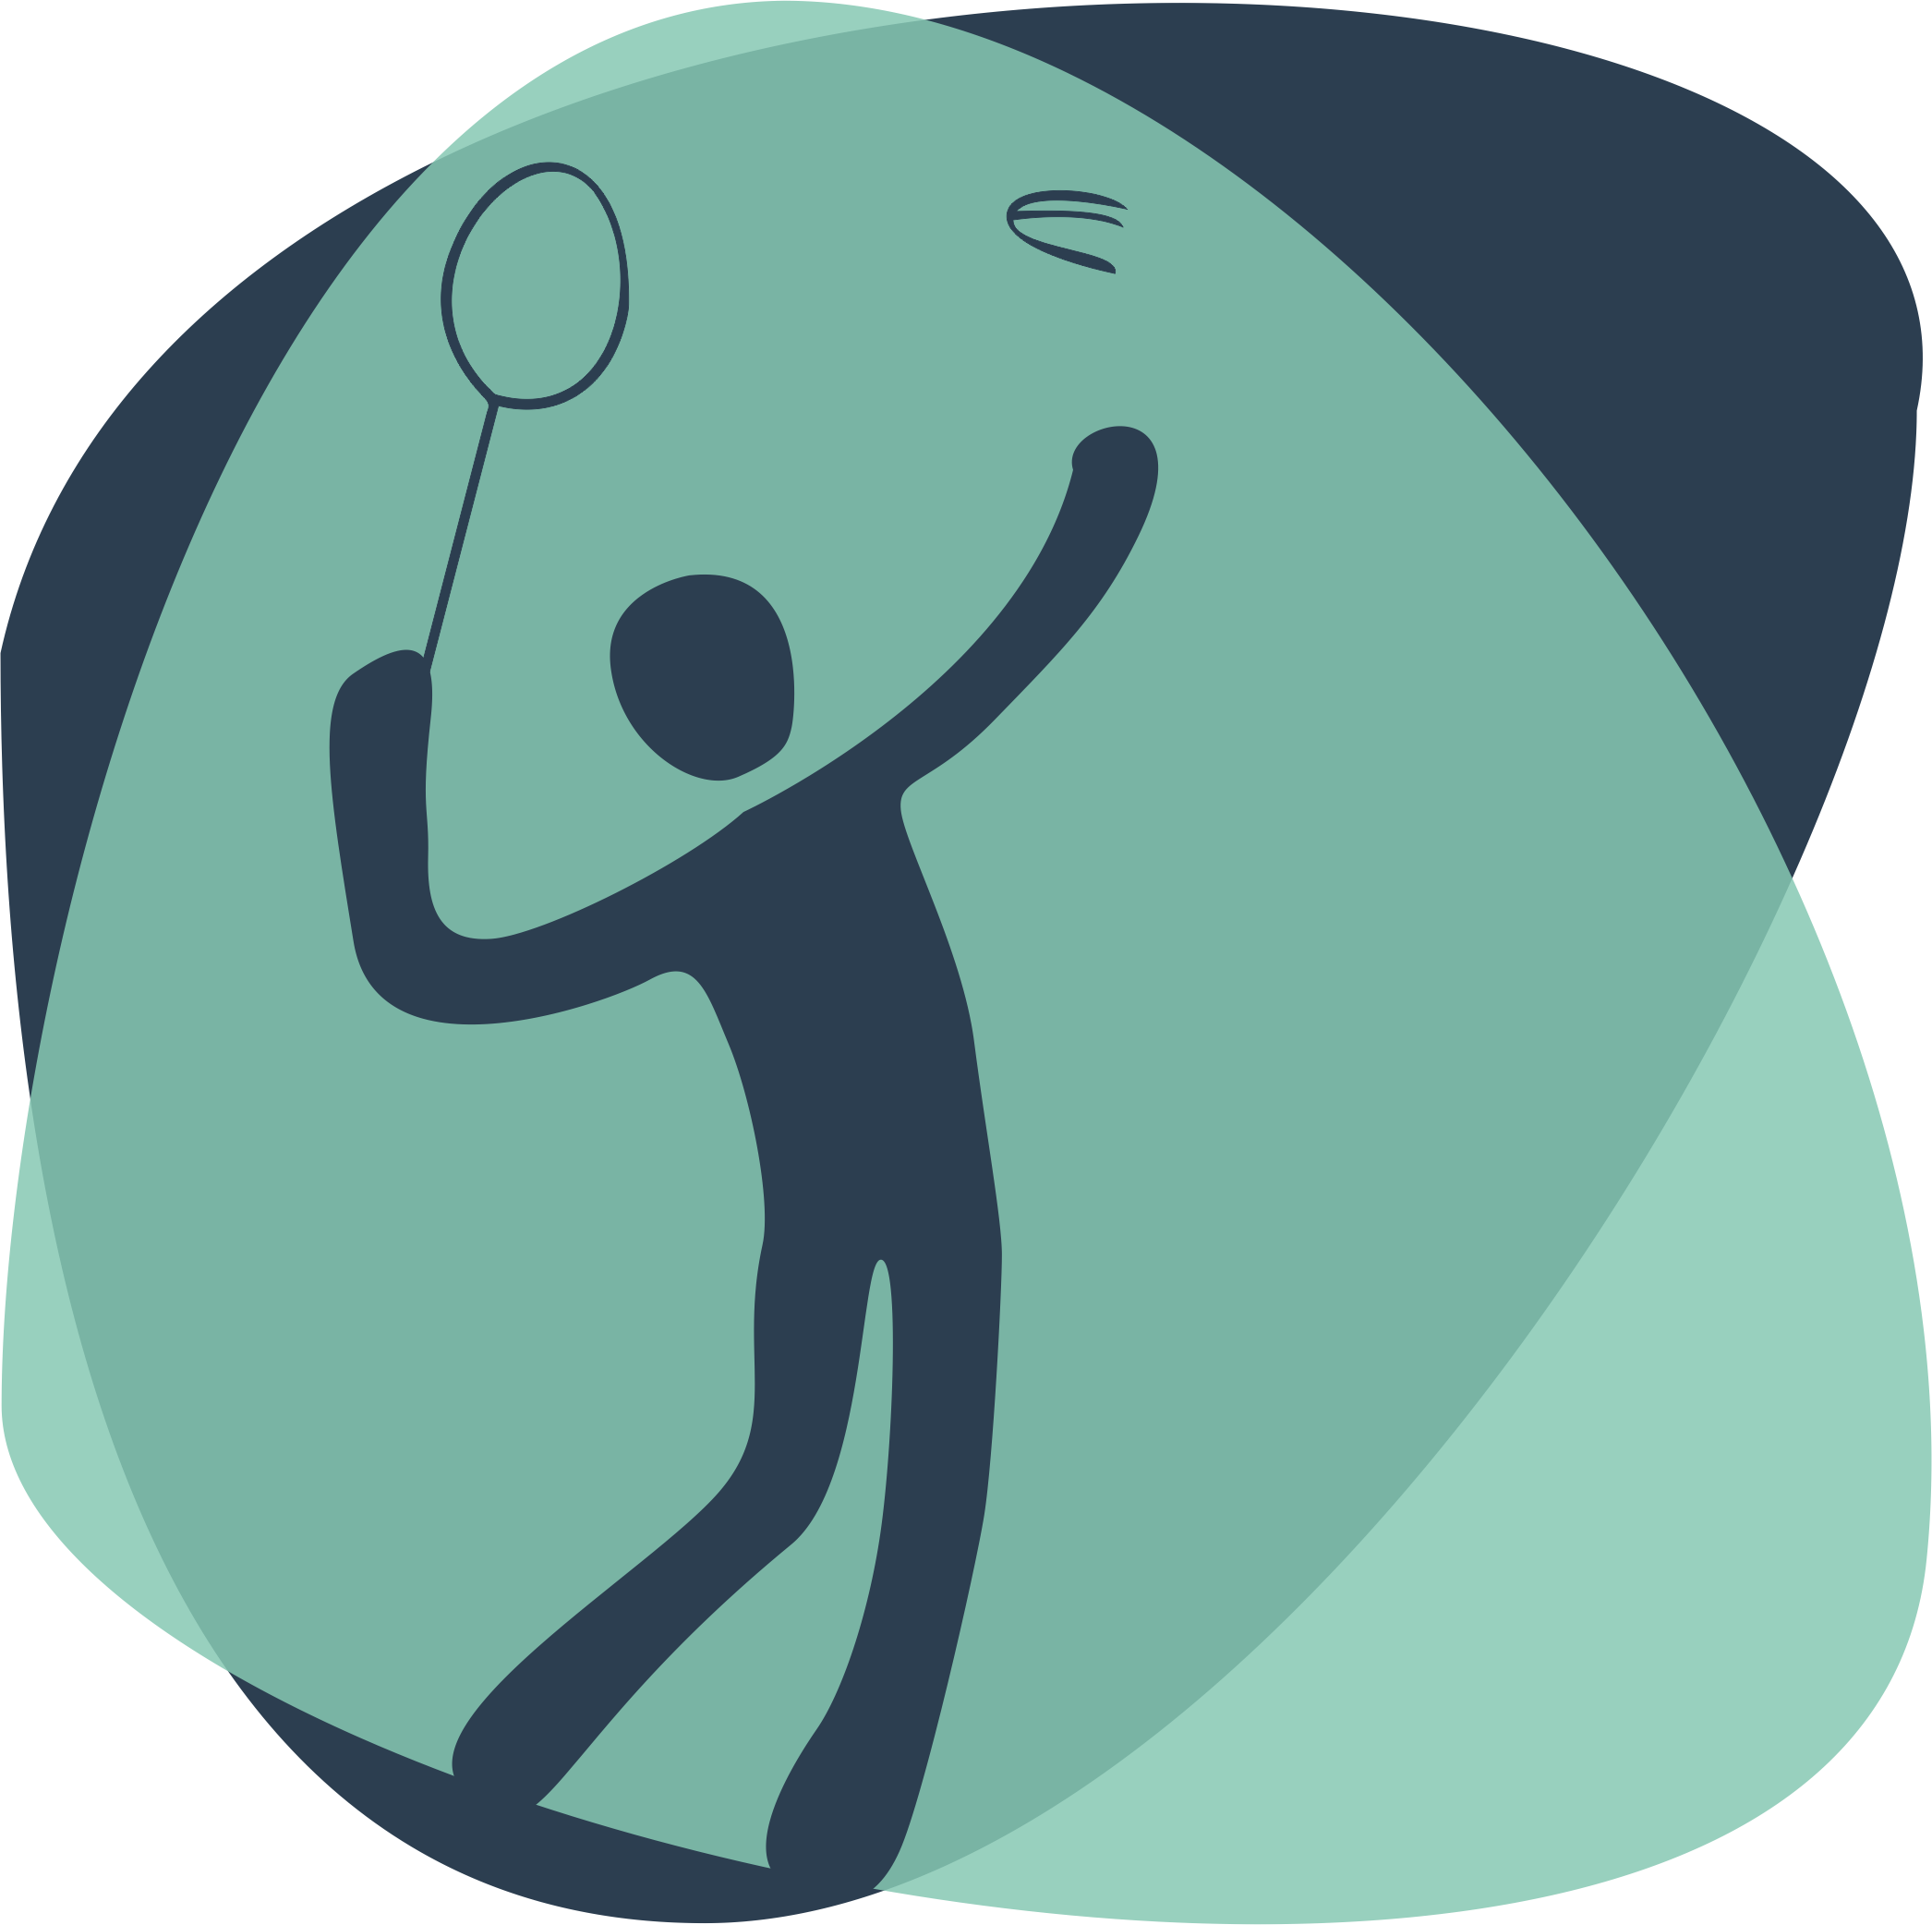 Sports clipart discus. Converge events